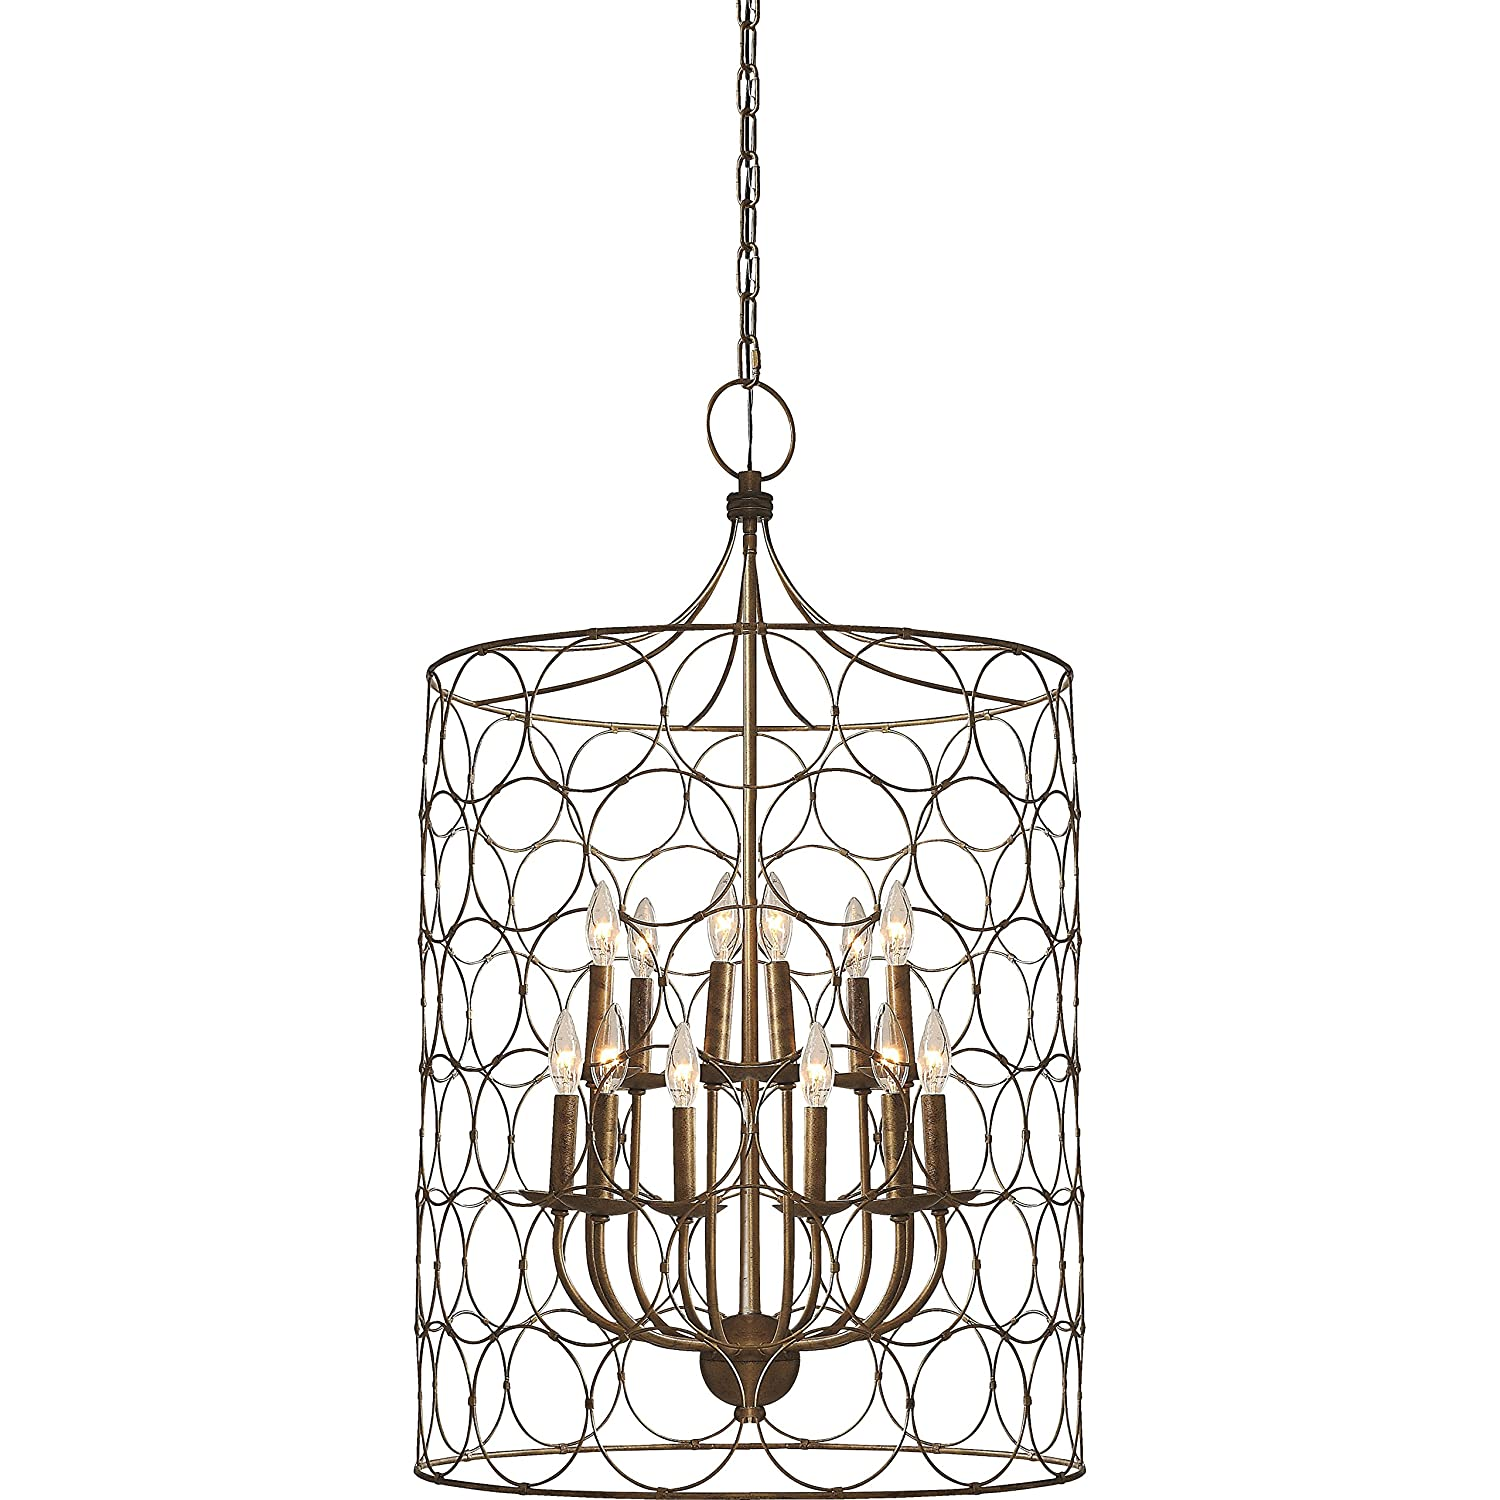 Flores circle design 12 light candle style chandelier uptown steel flores circle design 12 light candle style chandelier uptown steel gold cage lamp amazon arubaitofo Images